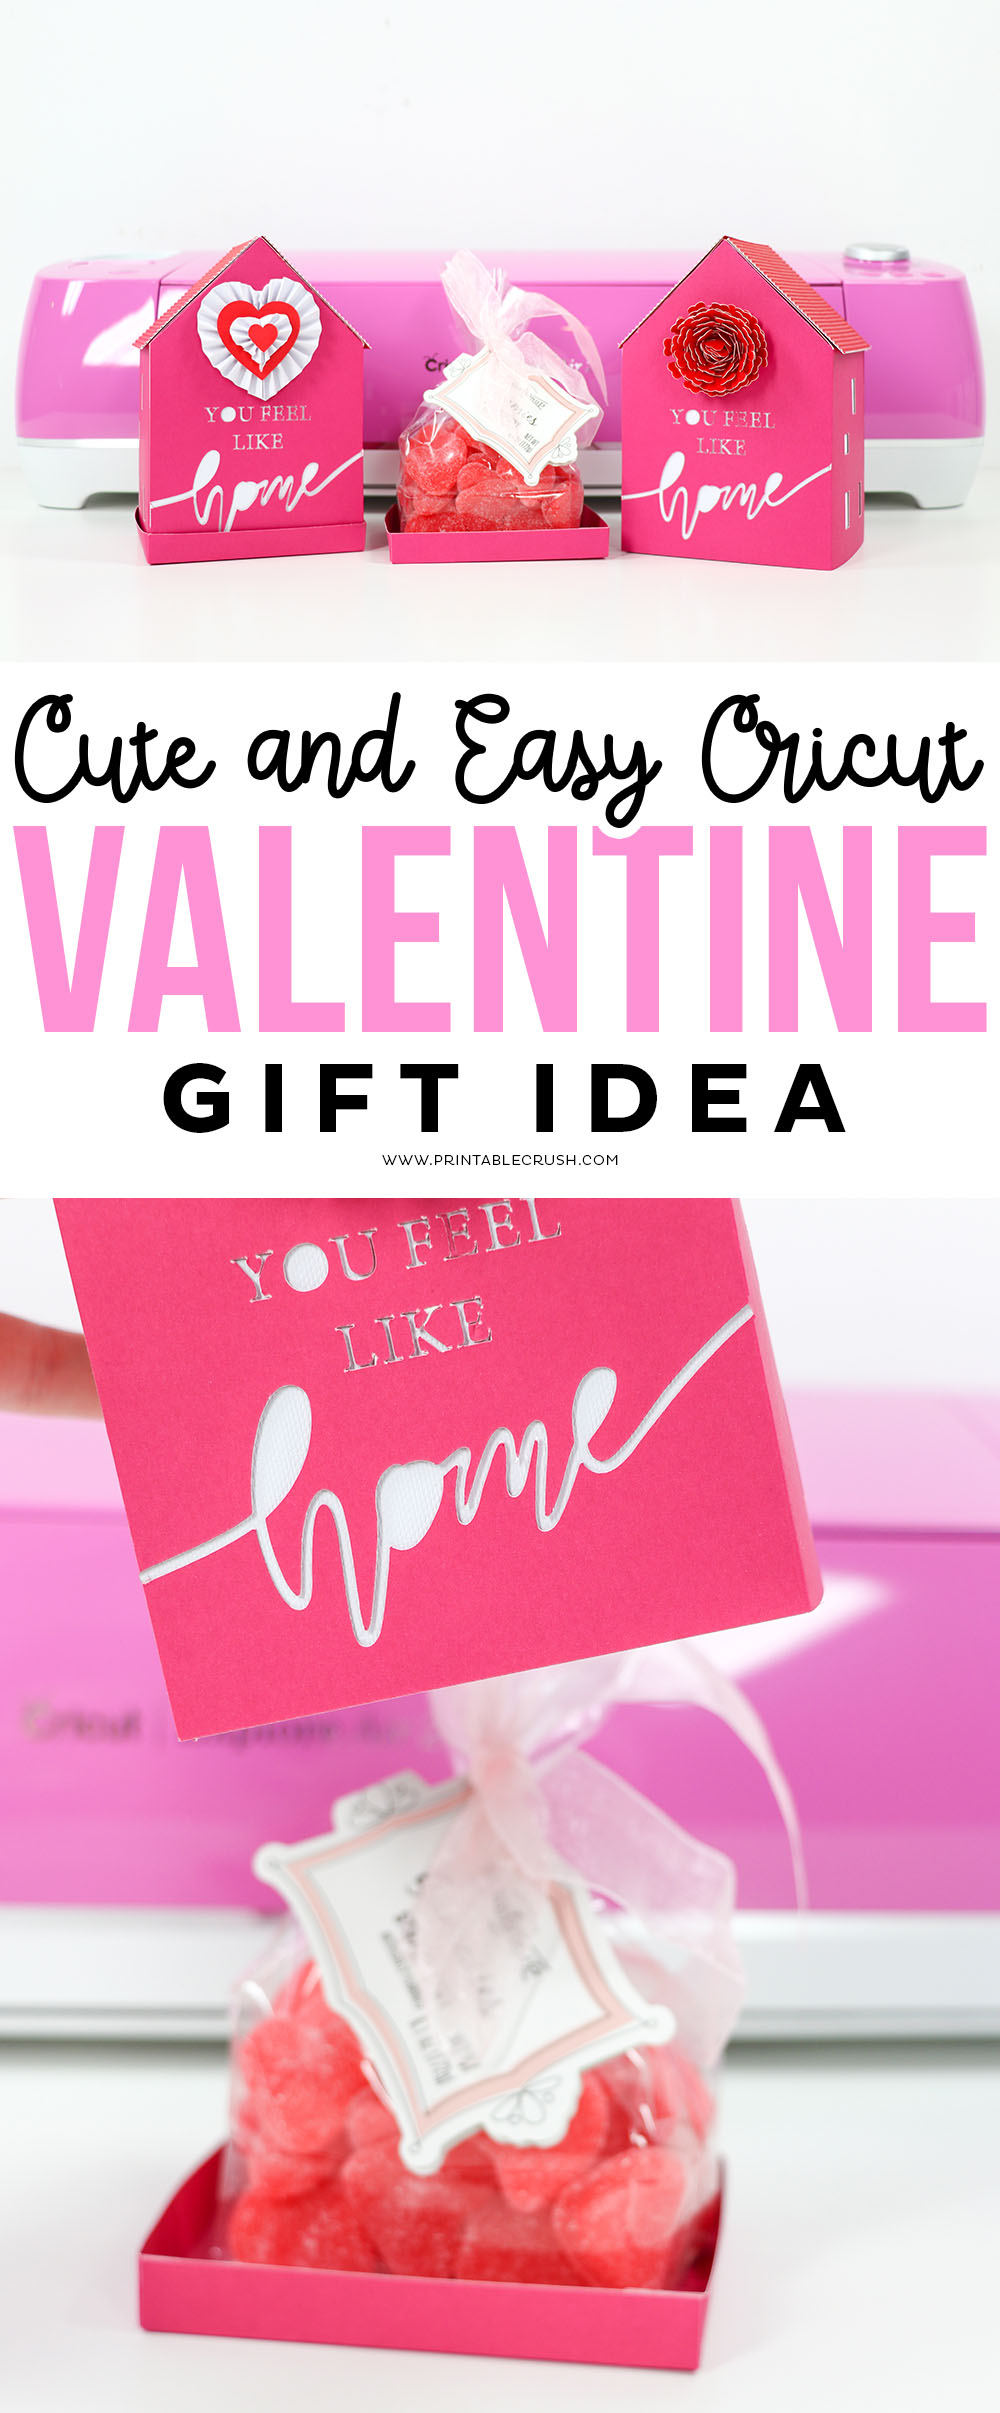 "Easy Cricut Valentine's Day Gift Idea. ""You Feel Like Home"" Valentine Gift Boxes.#cricutmade #sayitwithcricut #cricutexploreair2 #cricutcraft #cricutmachine #valentinesdaygift #valentine #valentinesdaycrafts"